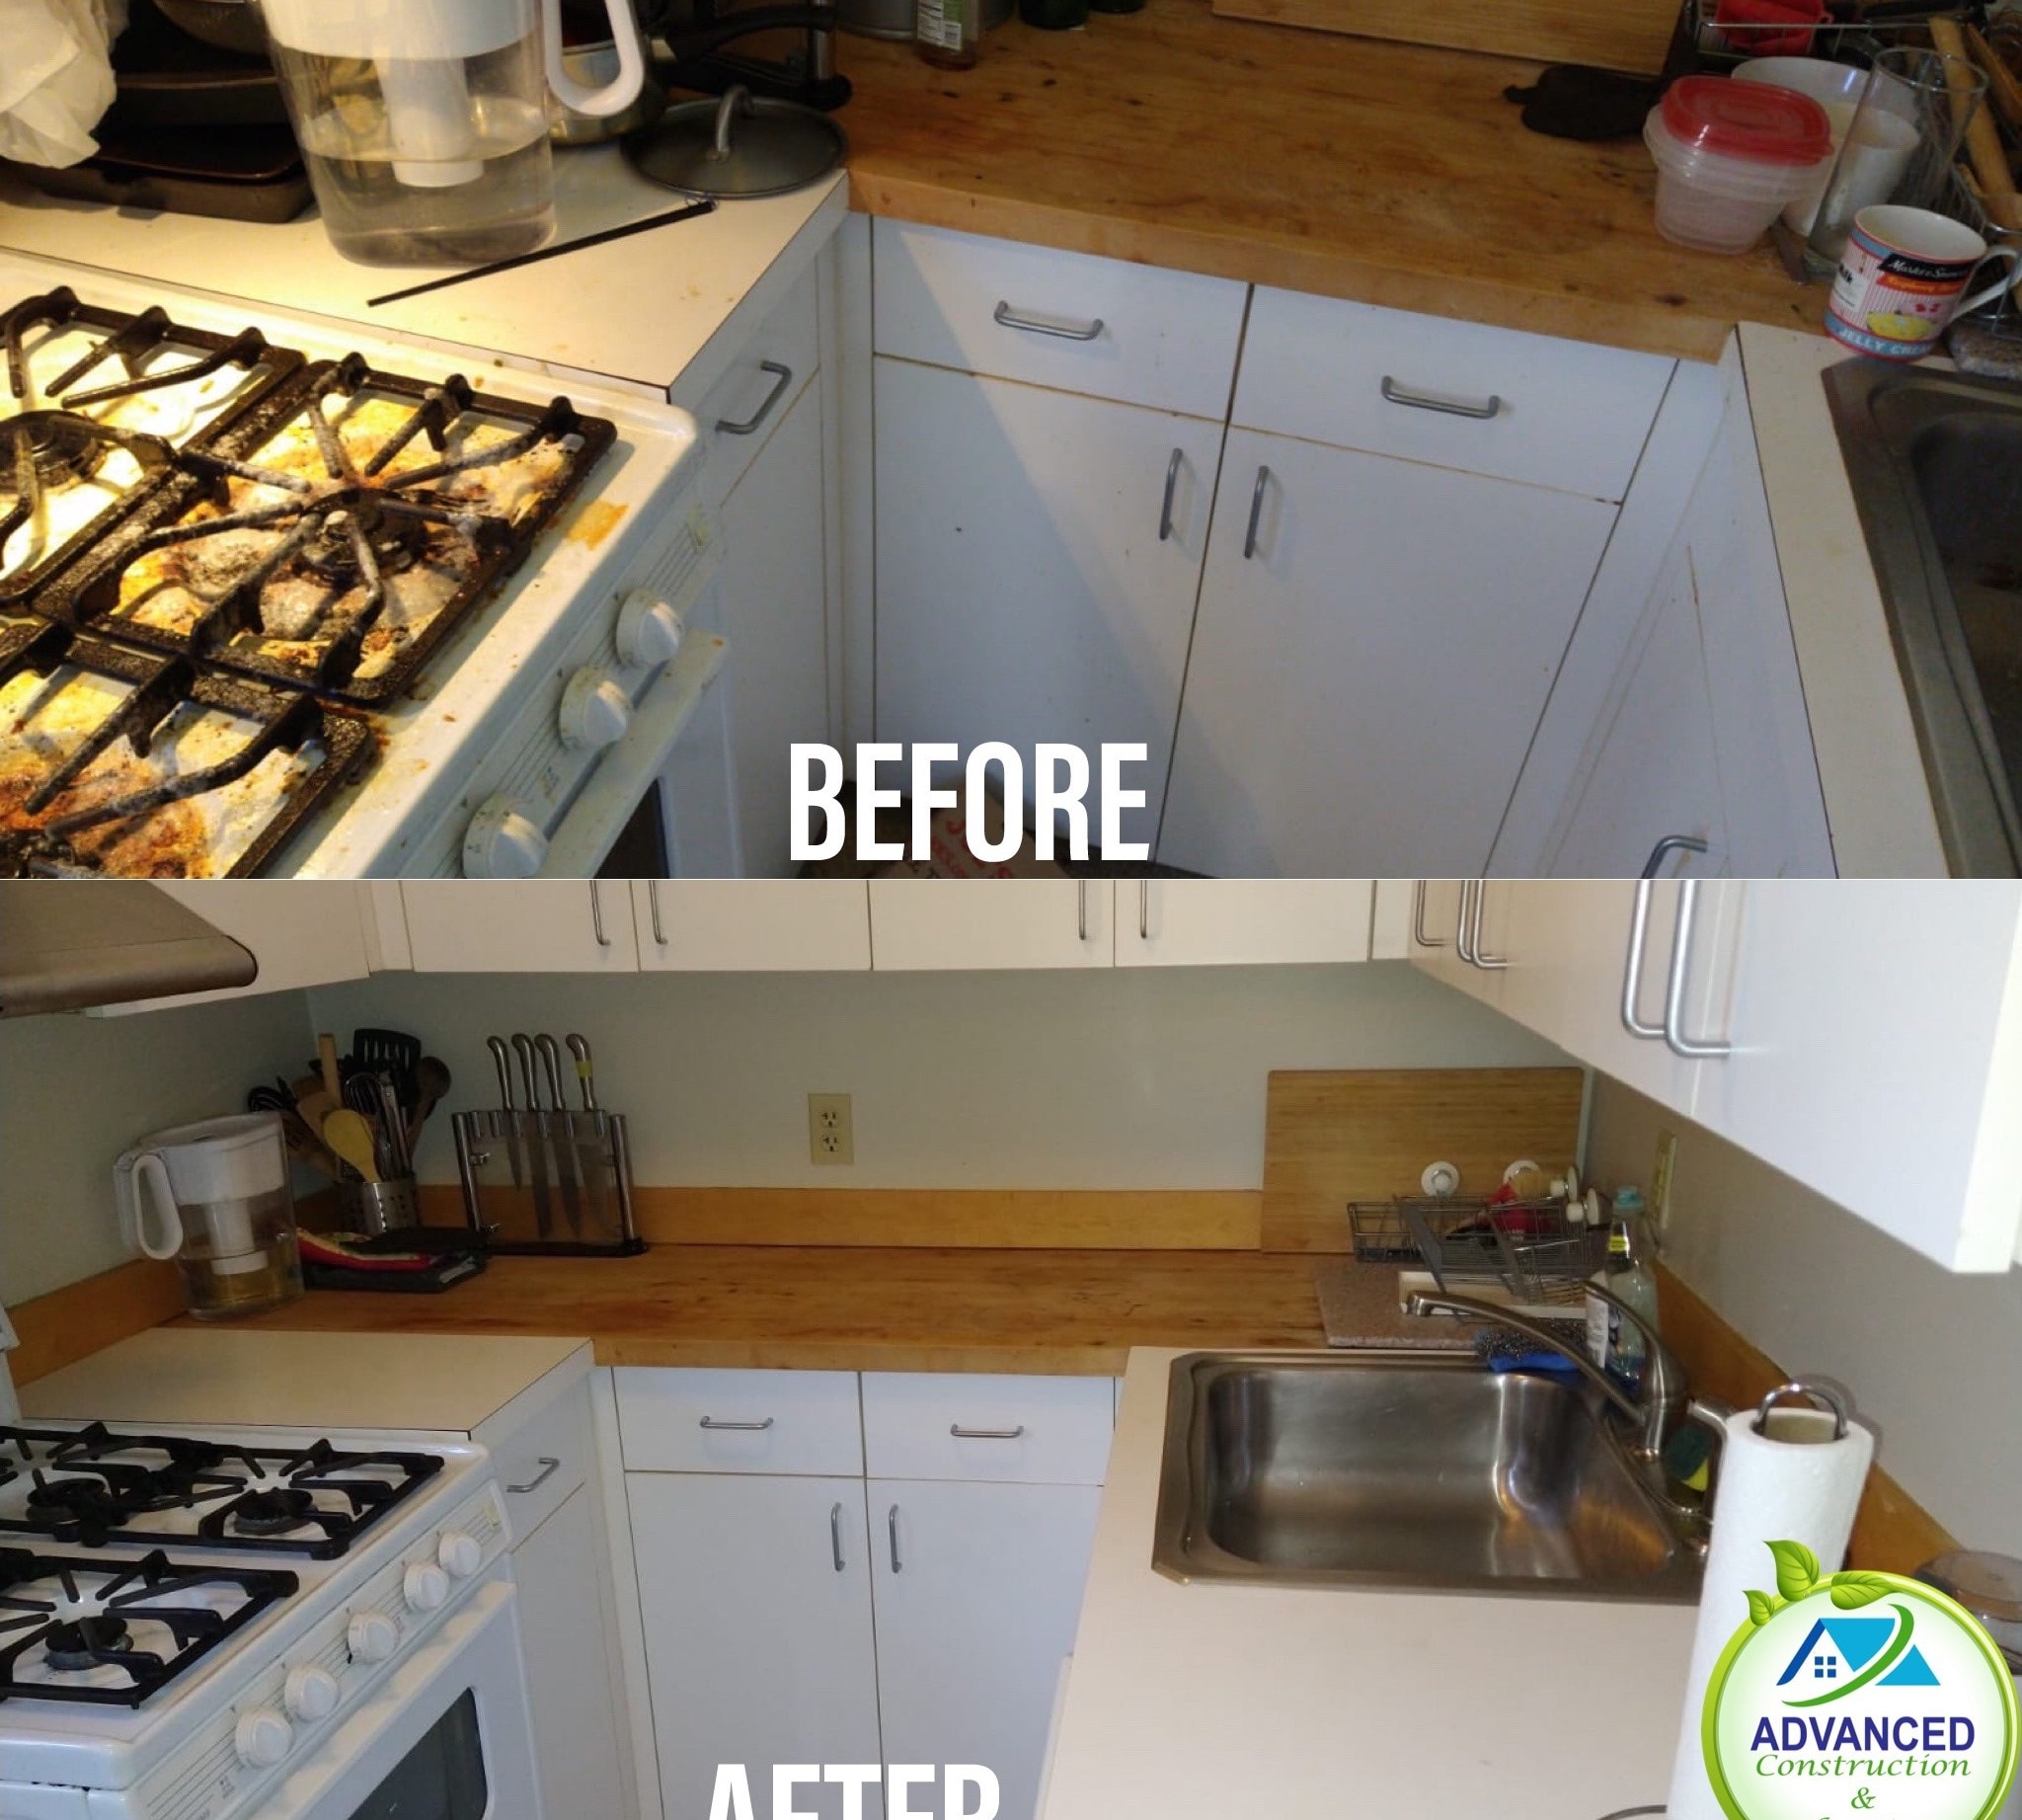 Cleaning before and after